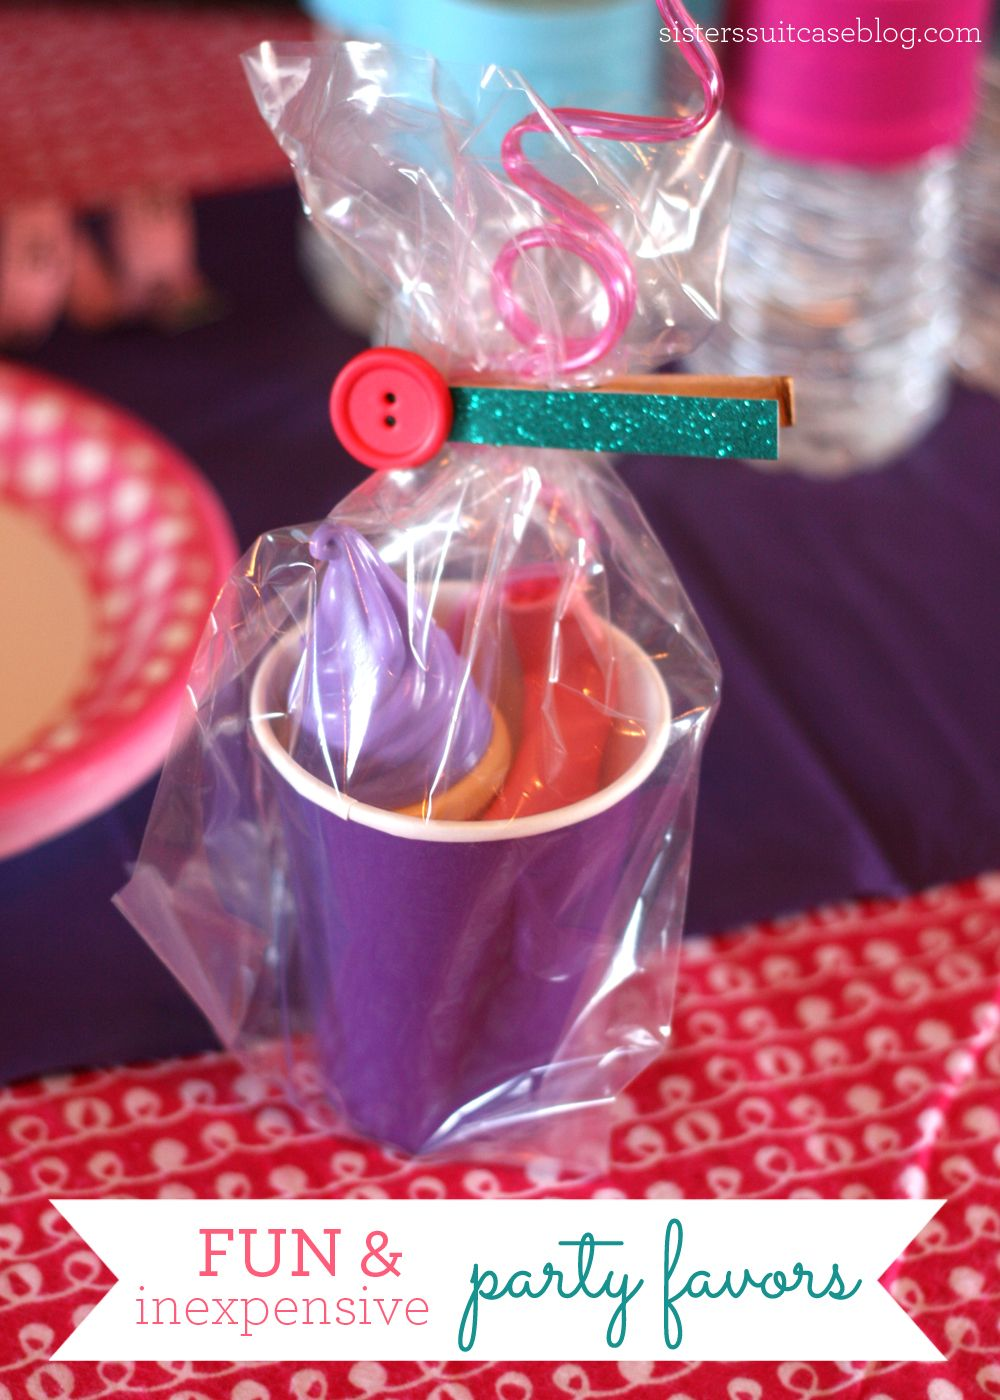 Inexpensive Kid Party Favors Ice Cream Cone Bubbles A Loopy Straw Couple Of Balloons And Some Candy Put Into Paper Cup Tie It Up With Glittered